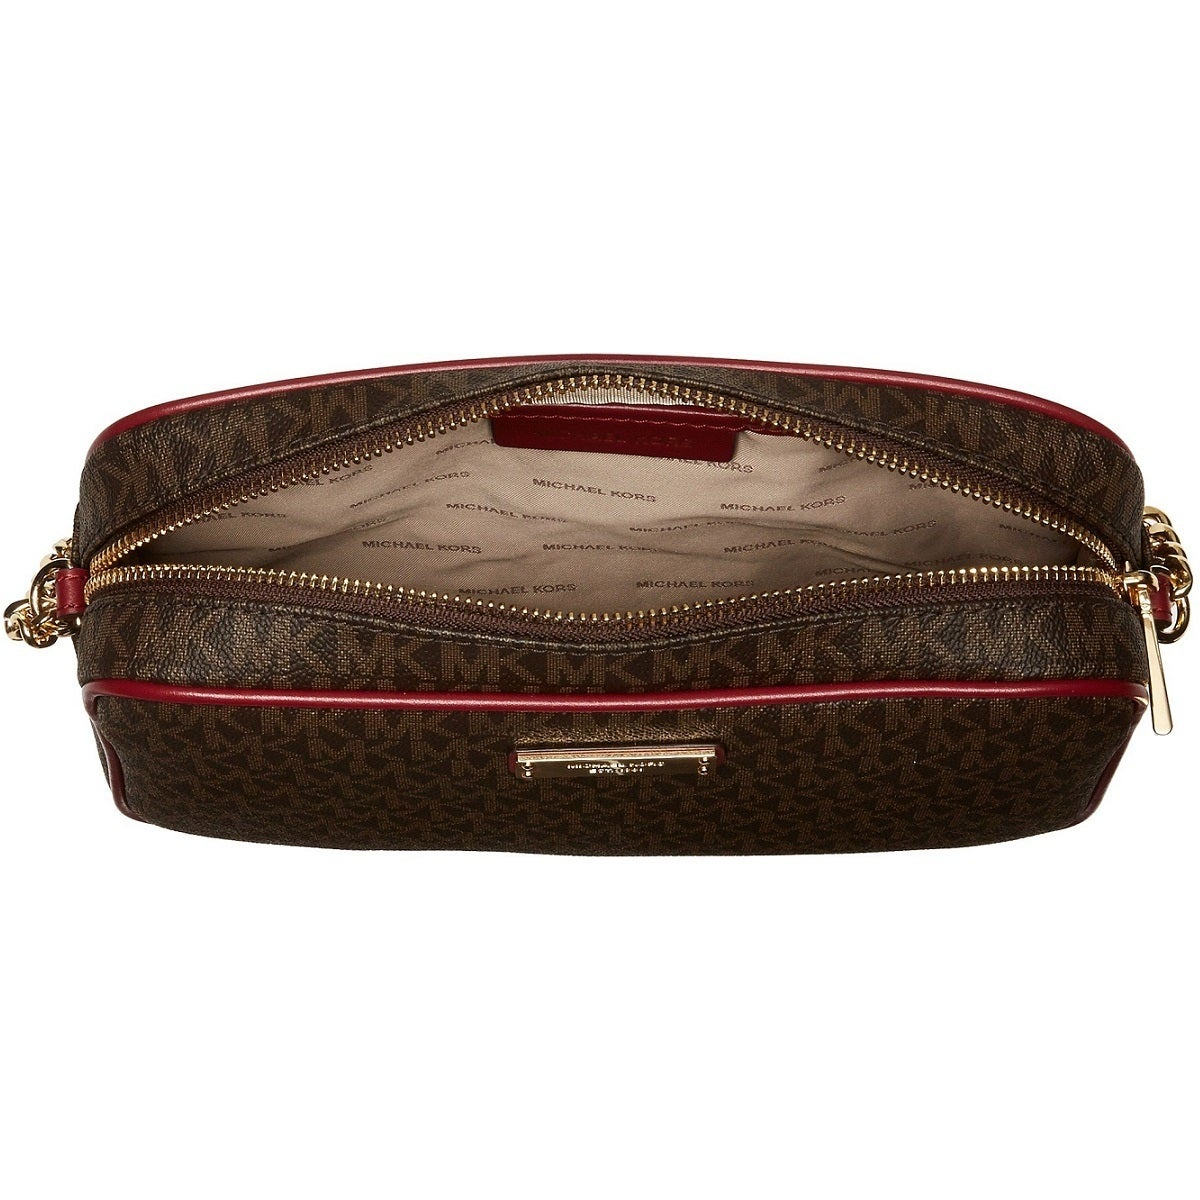 0fc0b44d5c Shop Michael Kors Signature Jet Set Large East West Brown Mulberry  Crossbody Bag - Ships To Canada - Overstock - 19295561